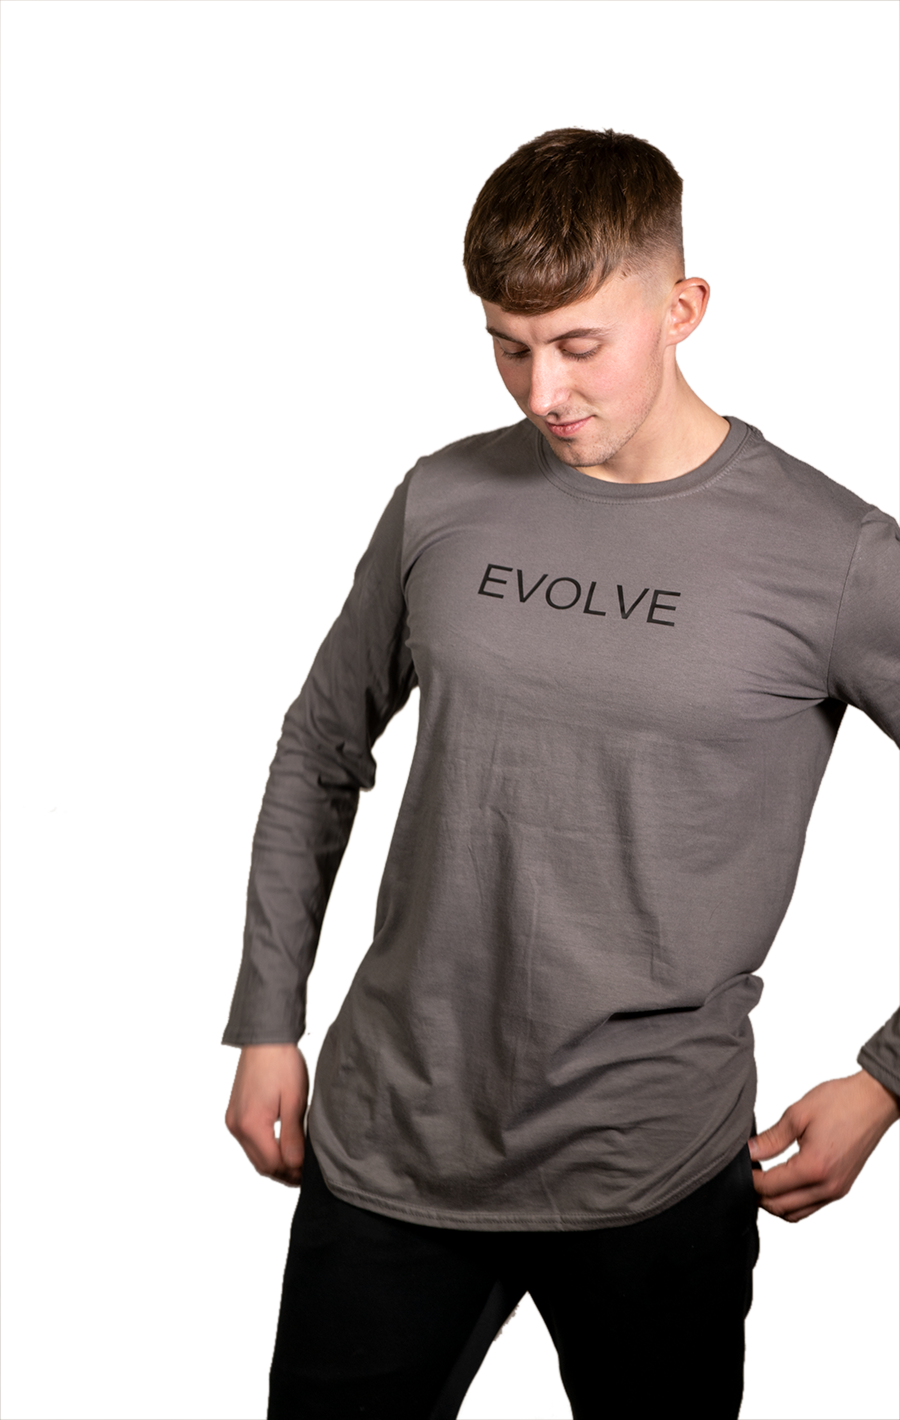 Long Sleeve Grey T Shirt with Black Evolve